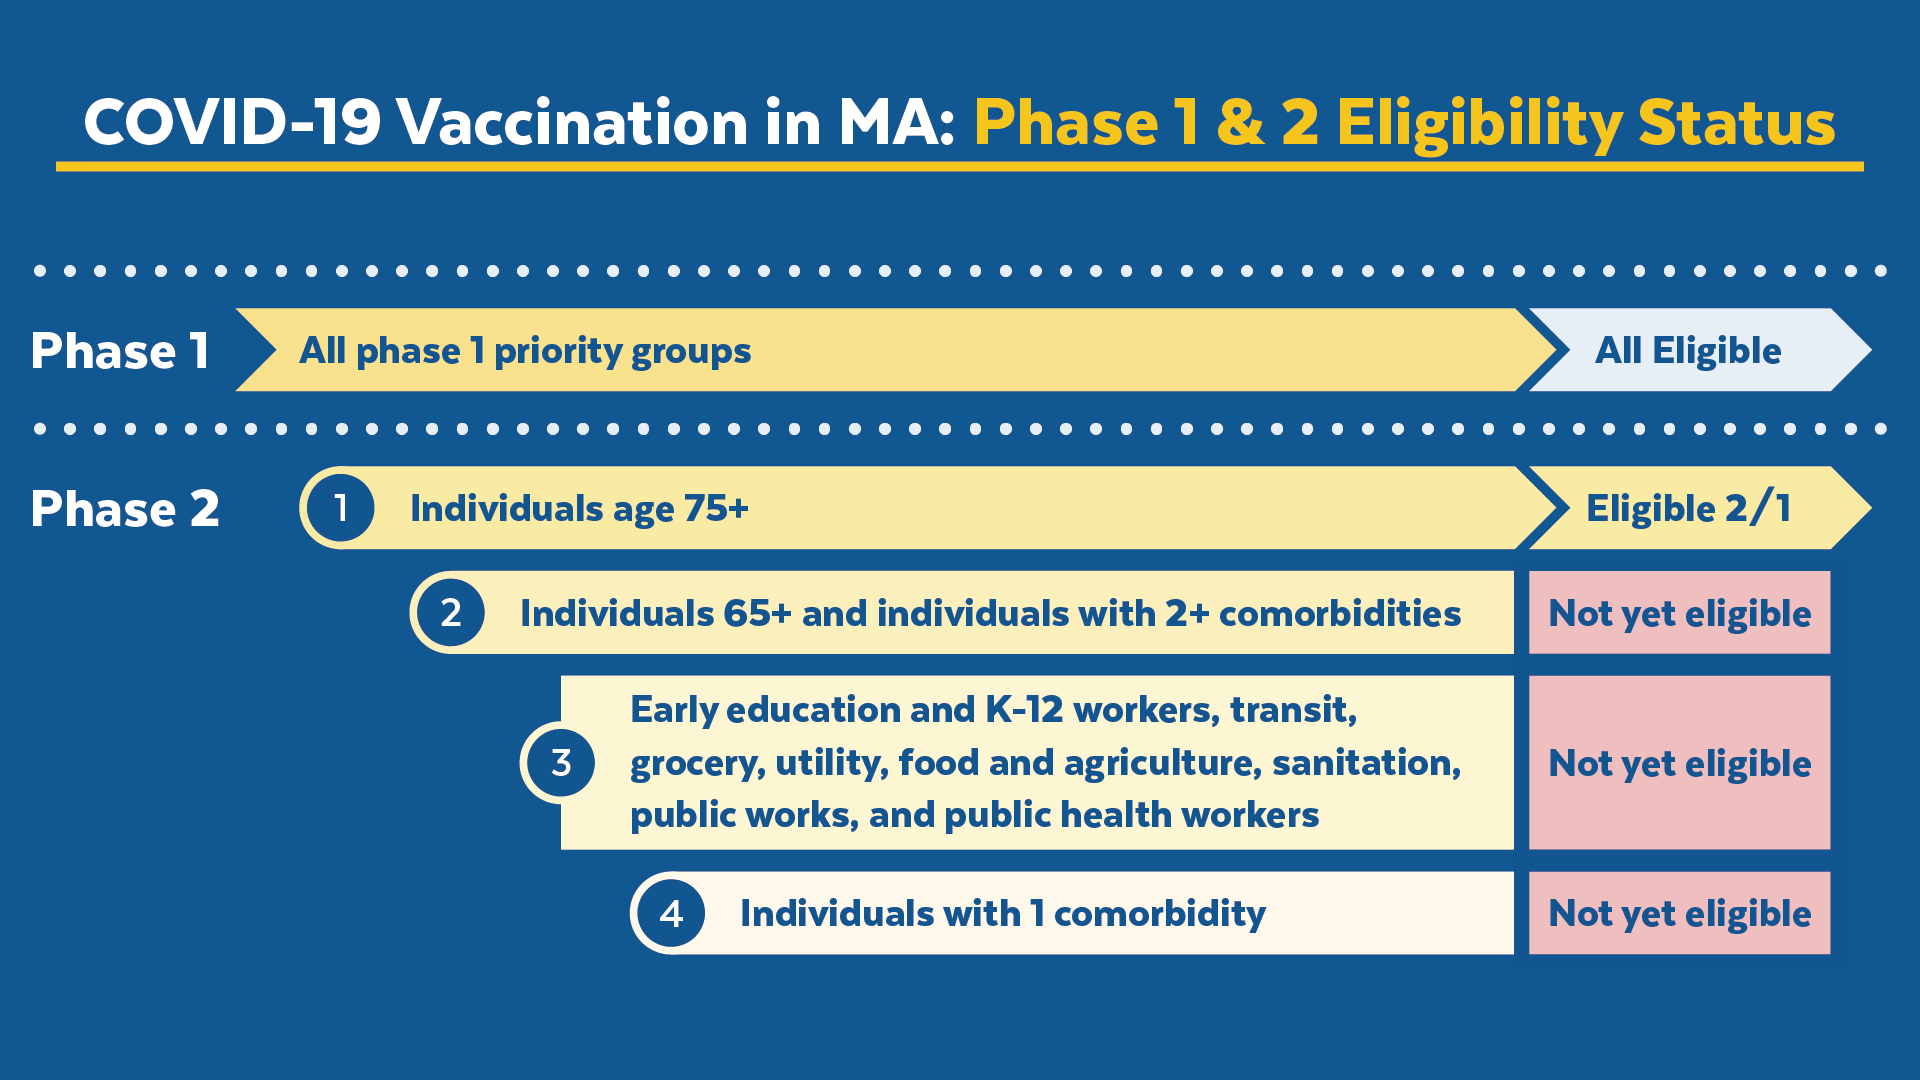 COVIDvaccine_Phases-One-and-Two-Timing-by-Group_v01_Social_1920x1080-No-URL.png